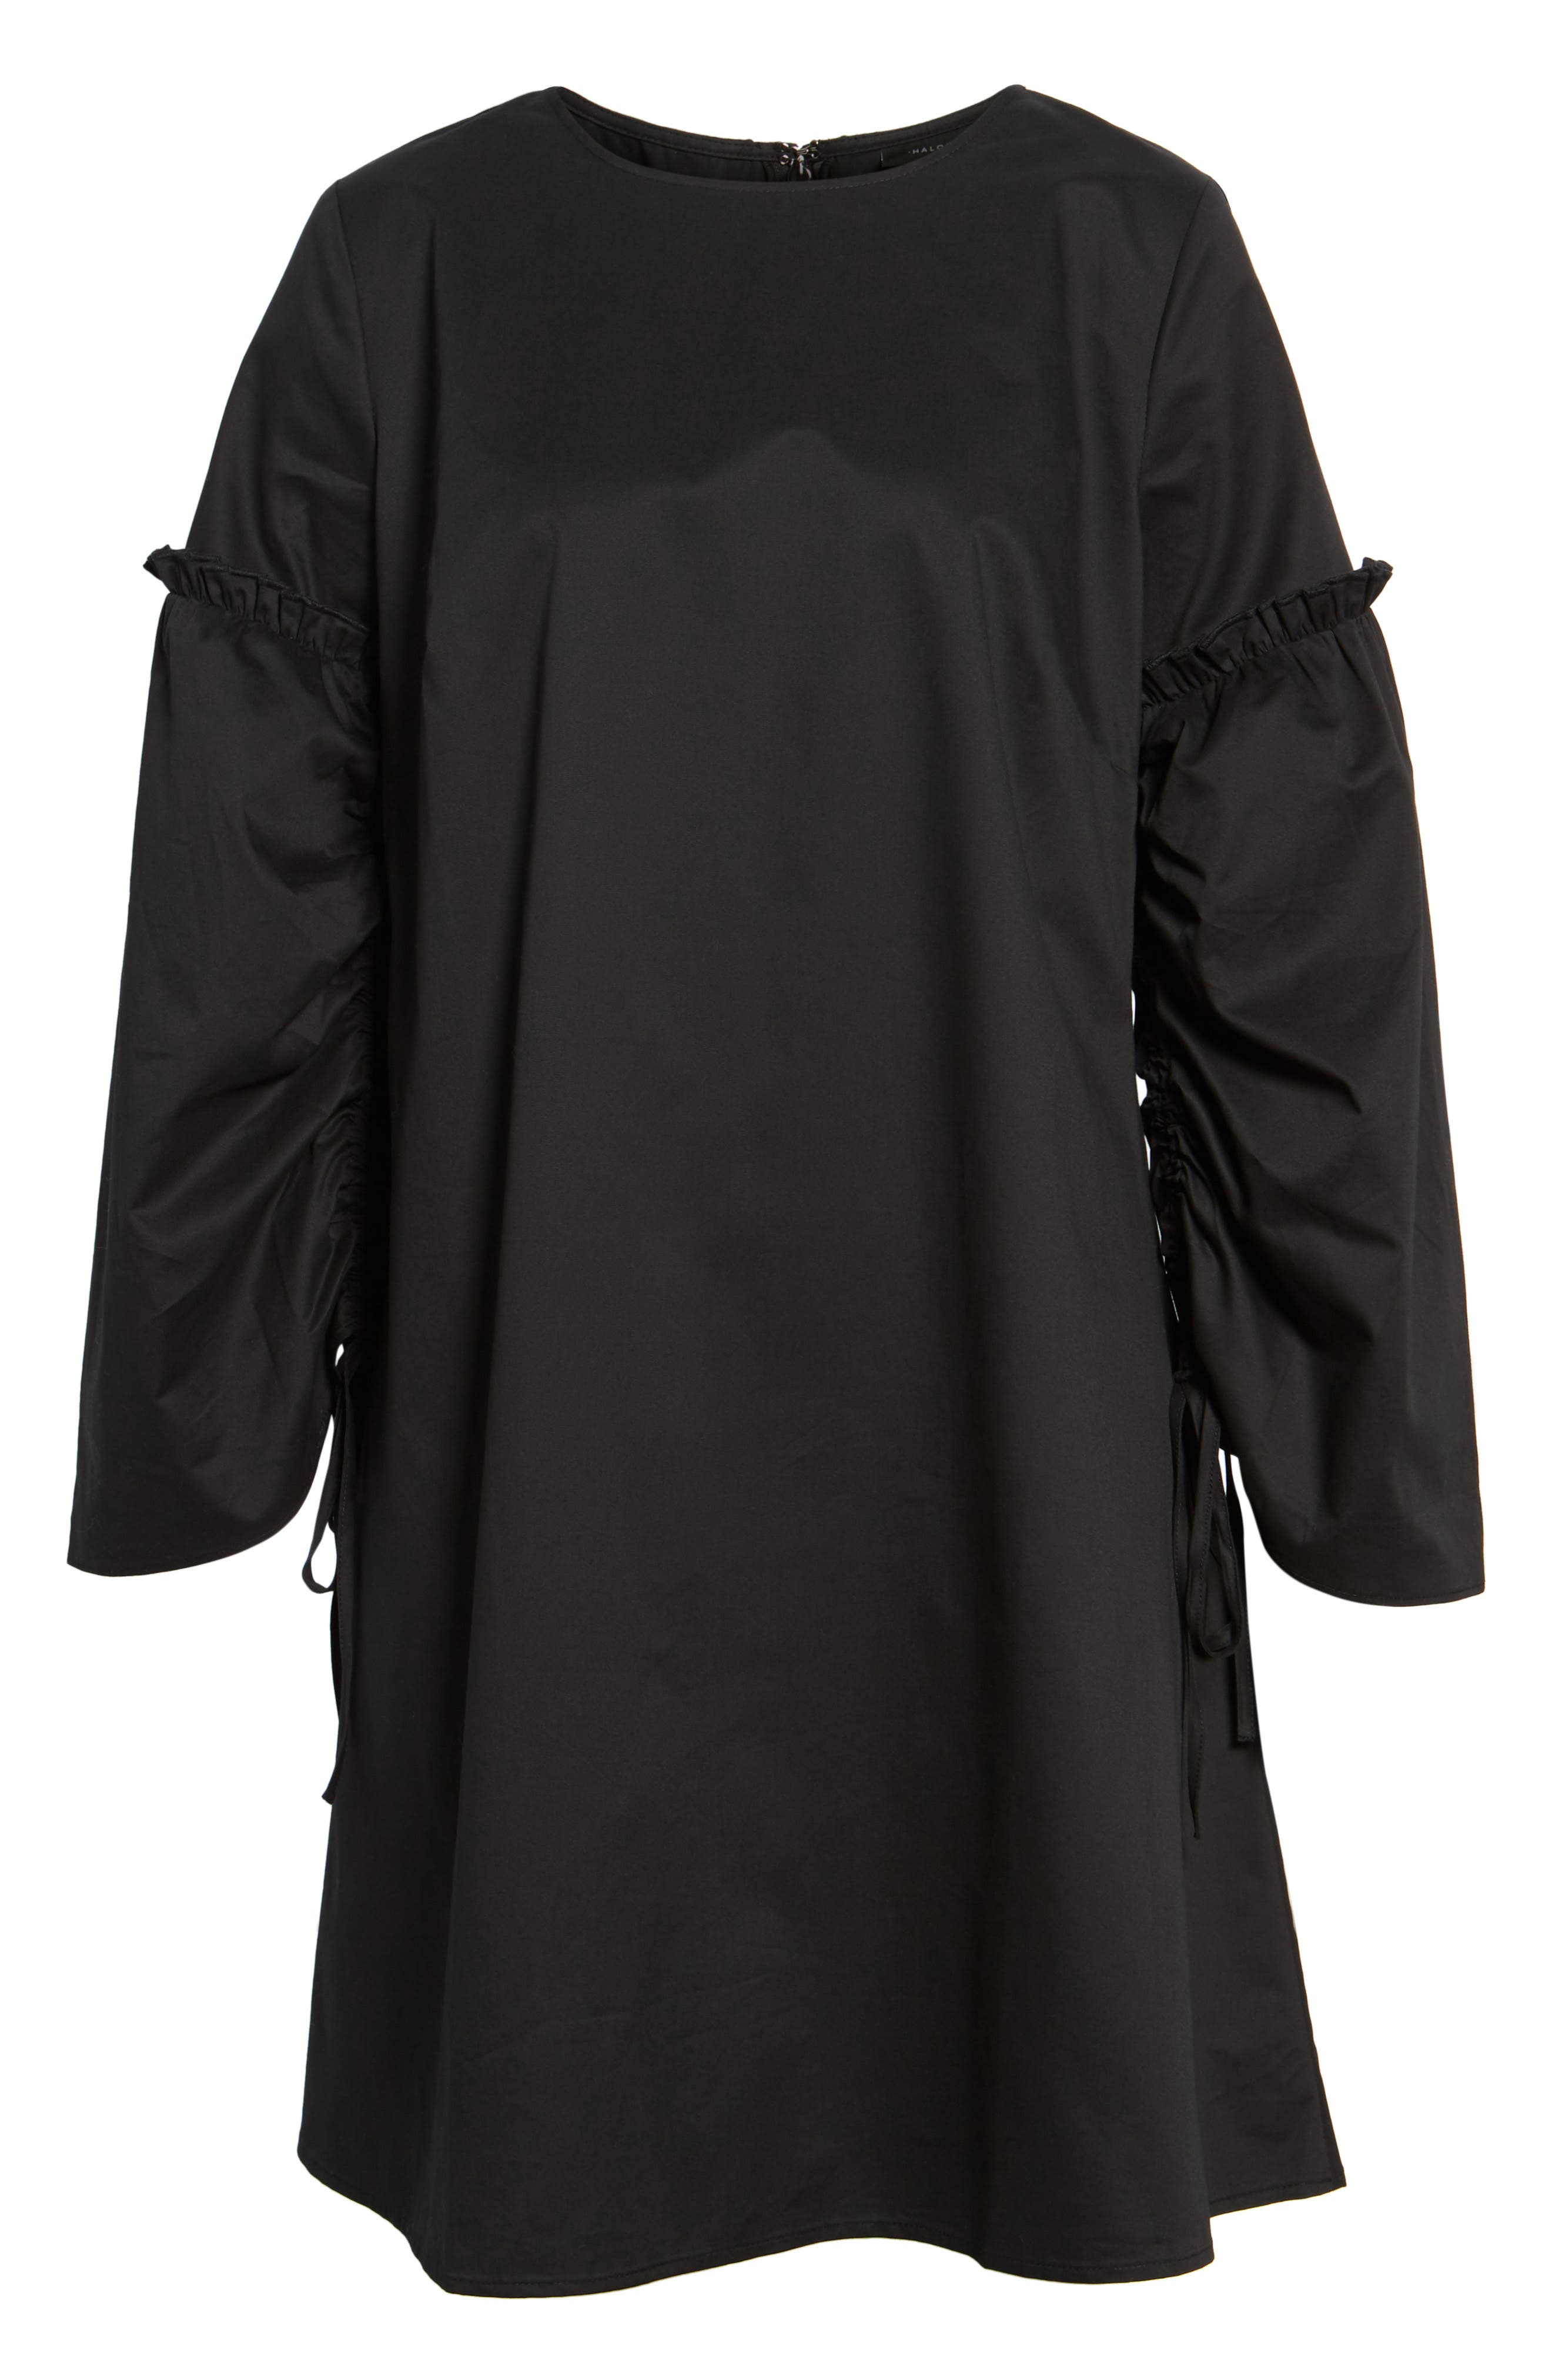 Parachute Sleeve Shift Dress,                             Alternate thumbnail 6, color,                             001